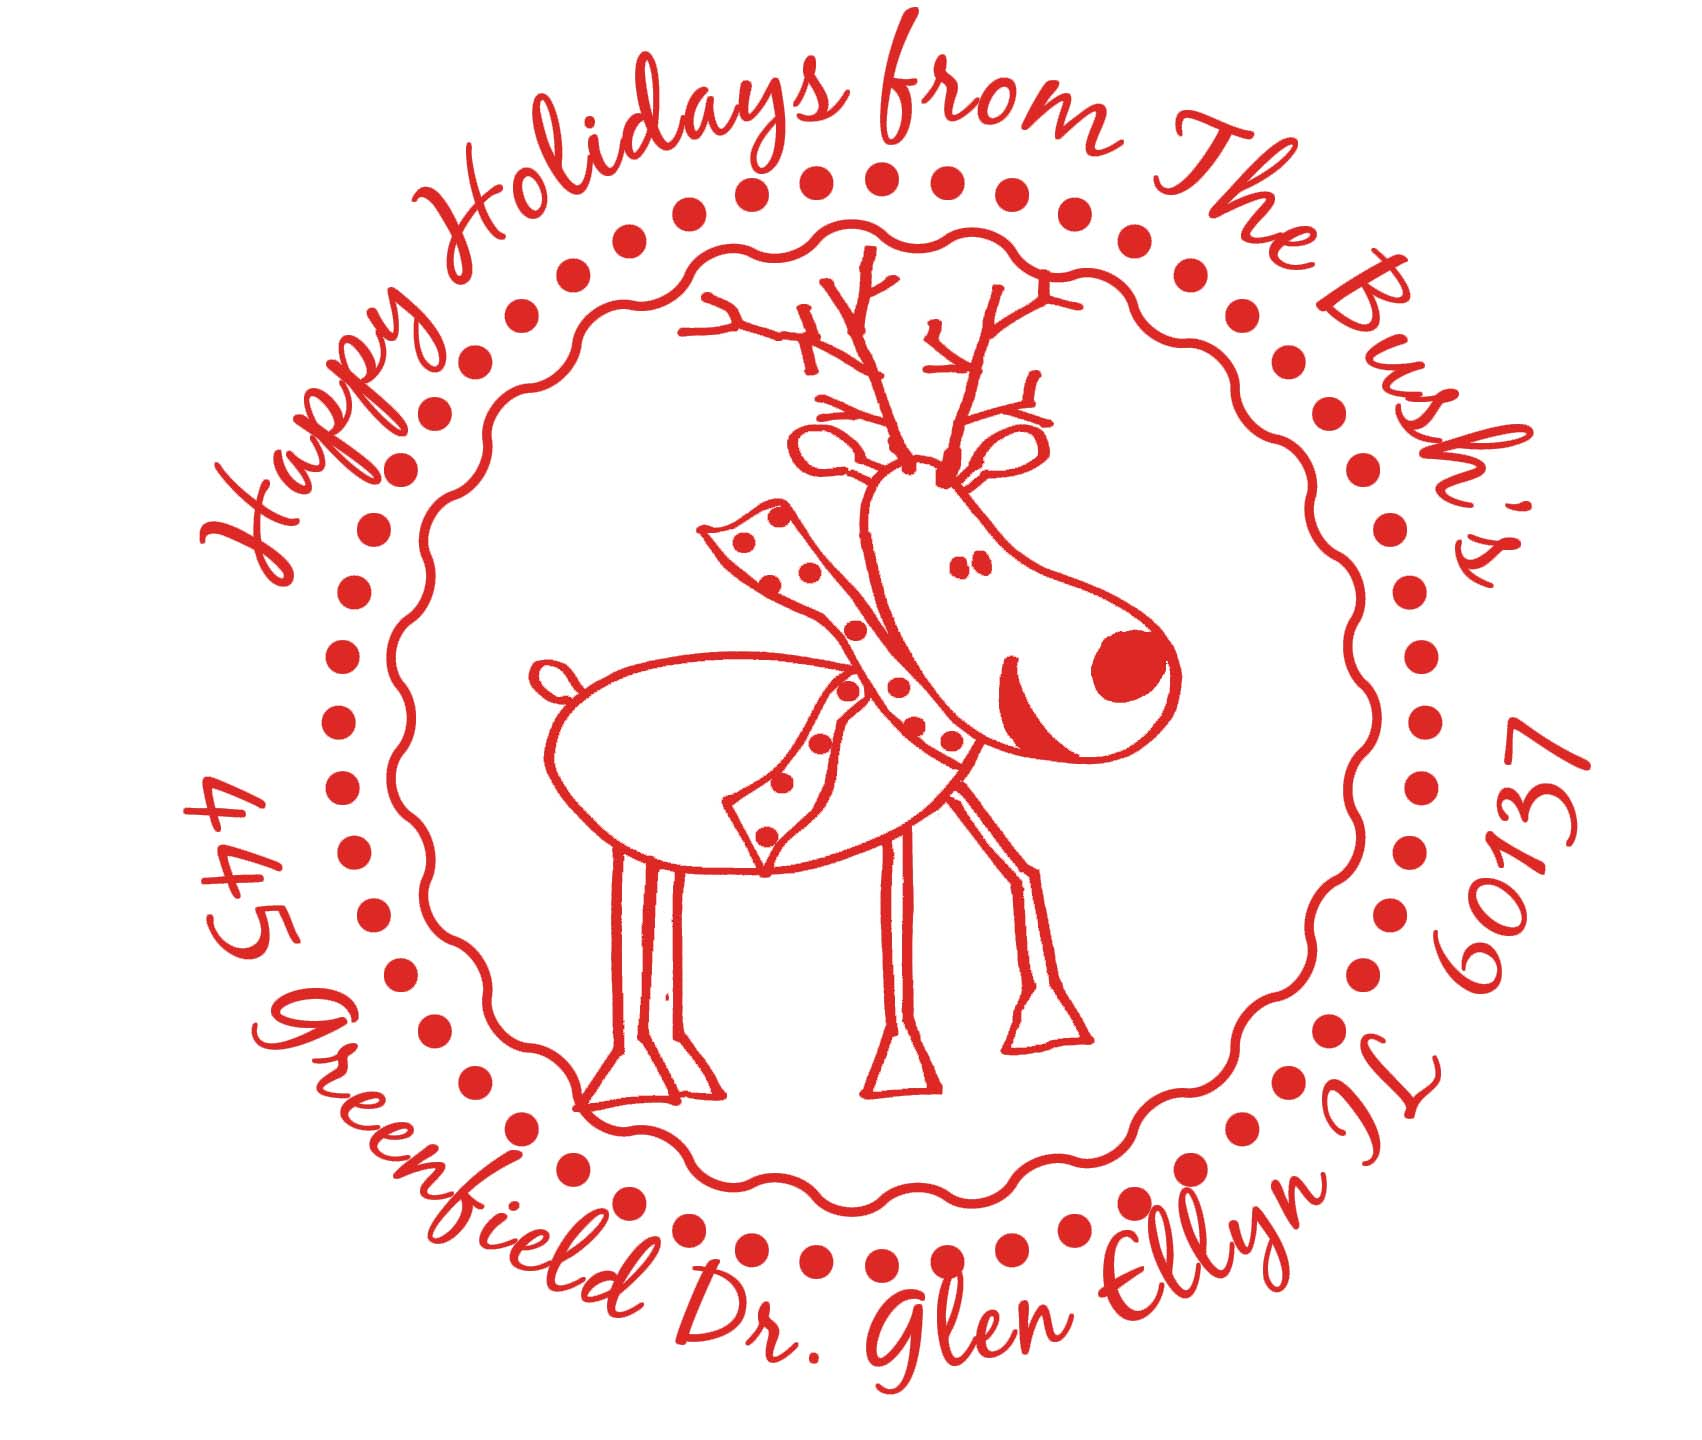 PJ Invites Holiday Stamp Designs-PJ Invites stamps, holiday stamps, holiday stamps by PJ Invites, whimsical stamps, oil based stamps and stampers, PJ Invites